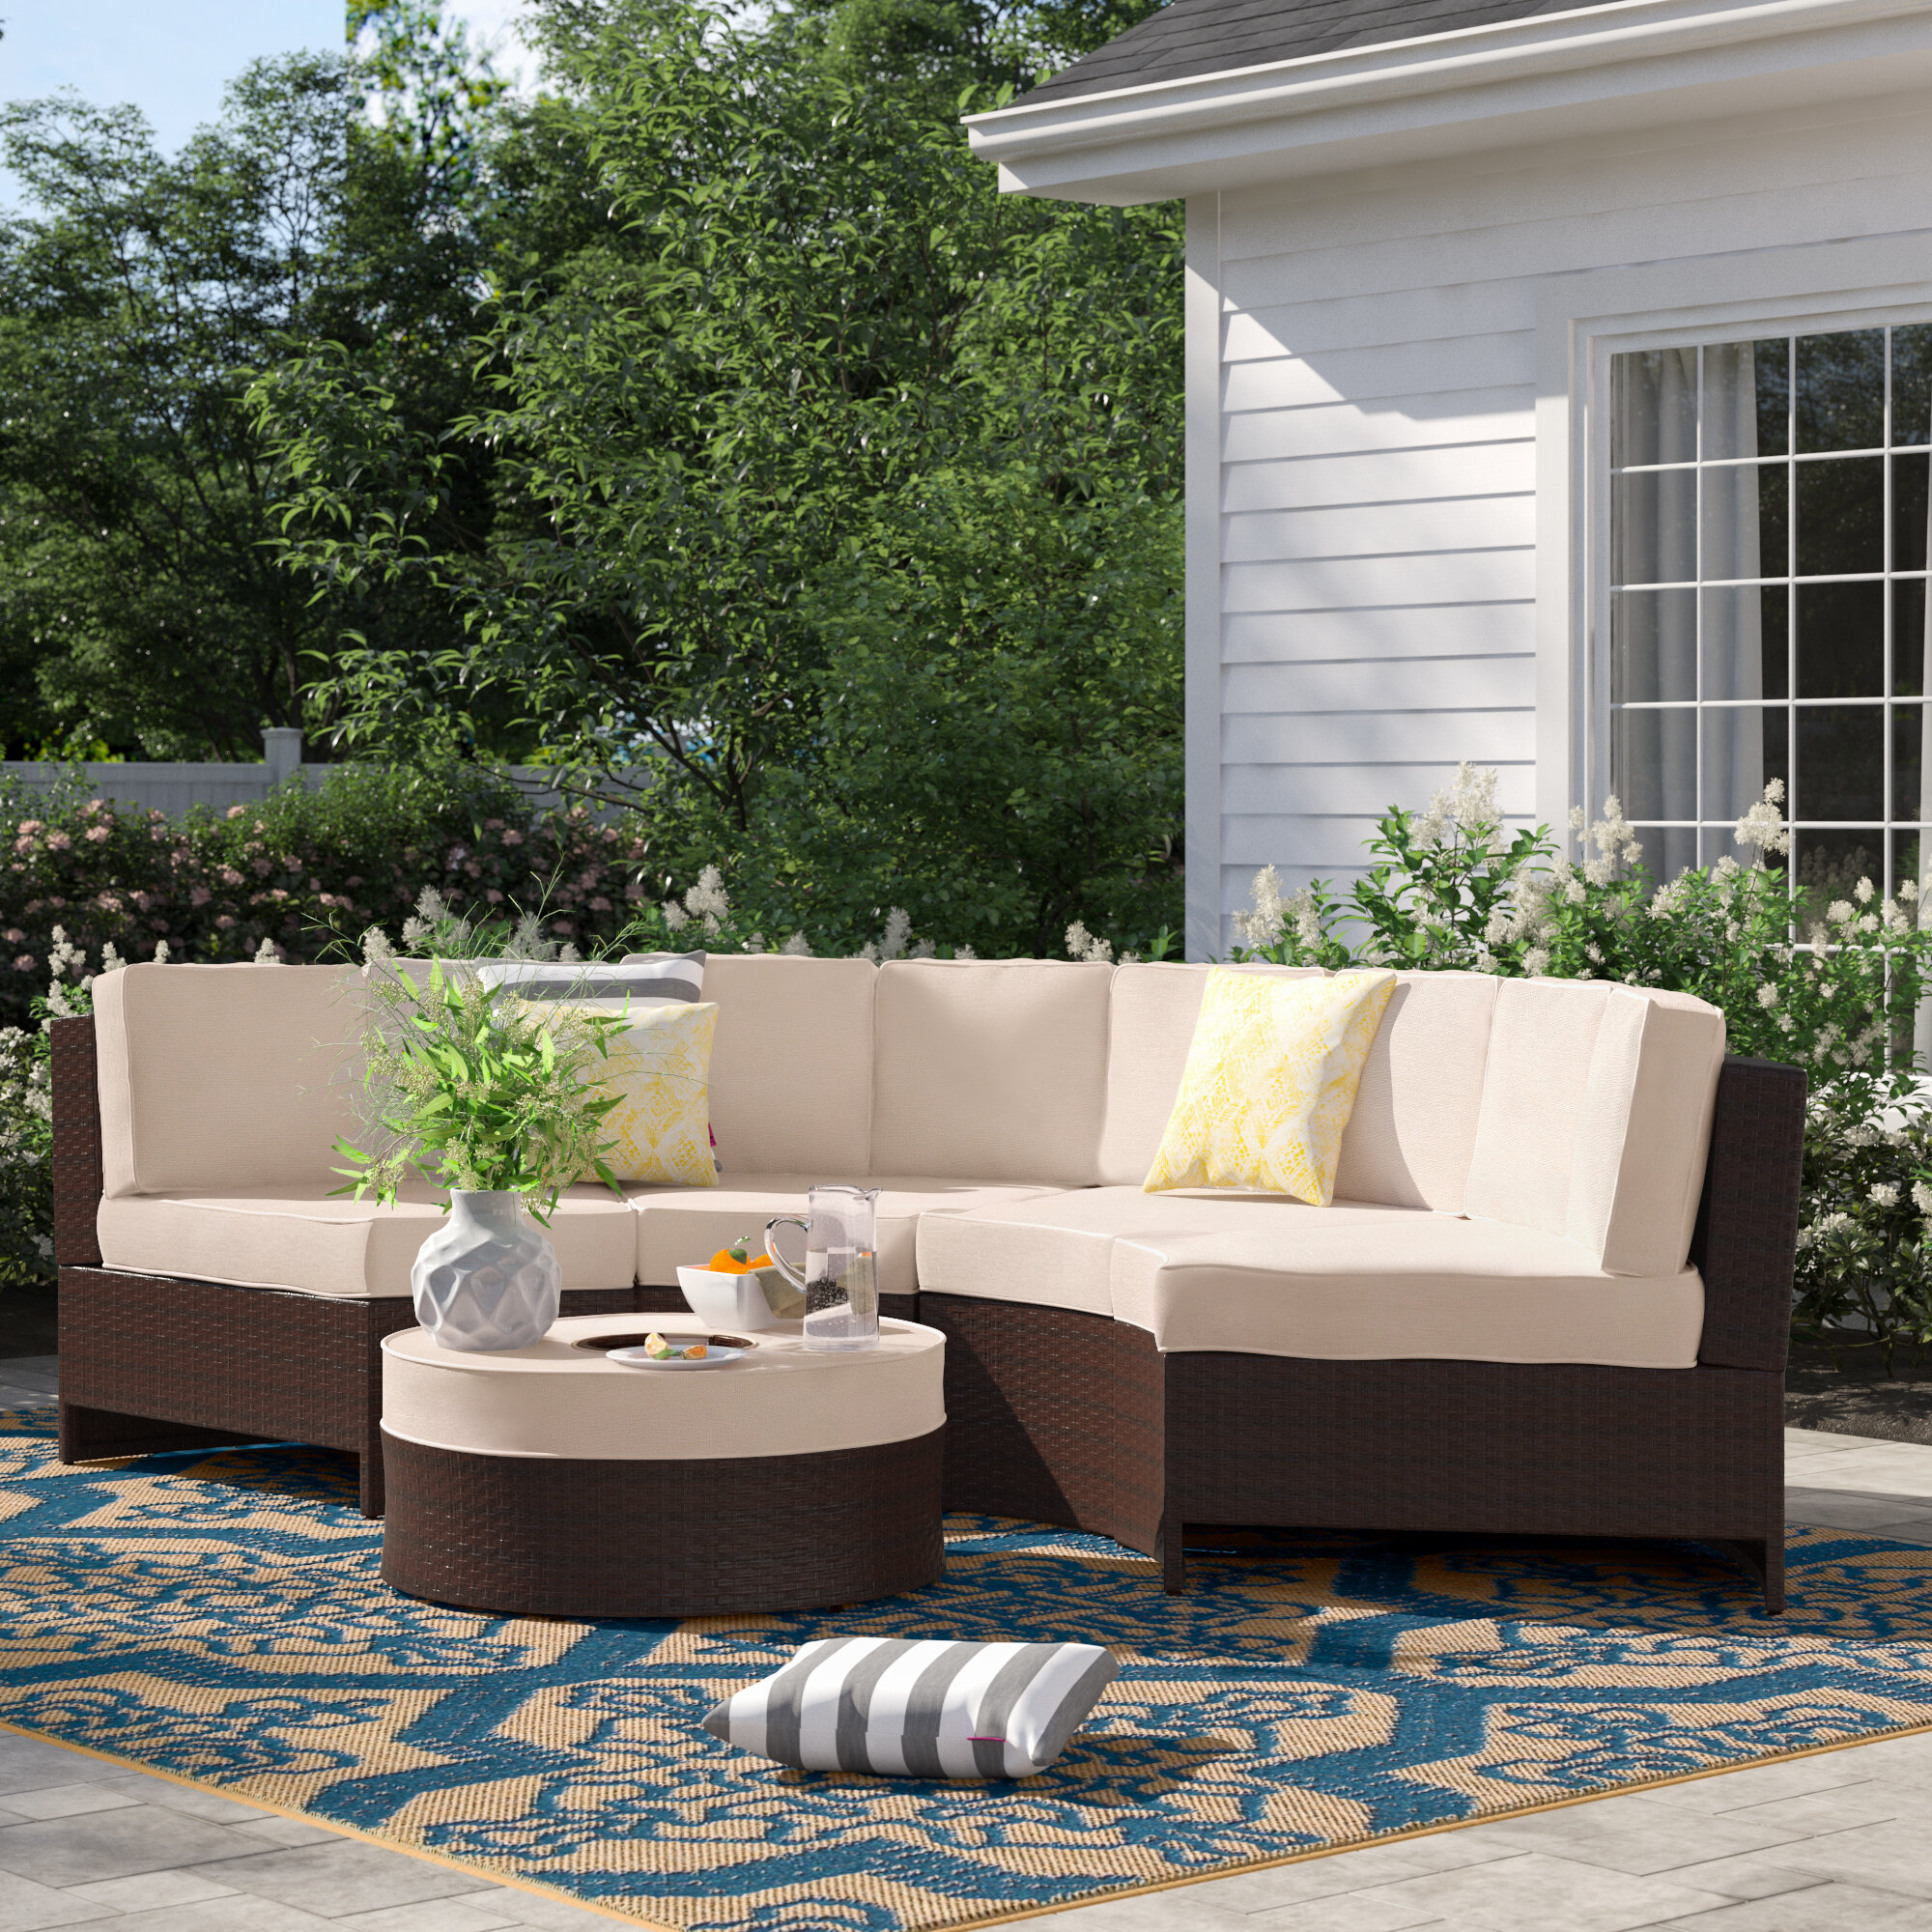 Sol 72 Outdoor Bermuda 5 Piece Rattan Sectional Seating Group With Cushions Reviews Wayfair